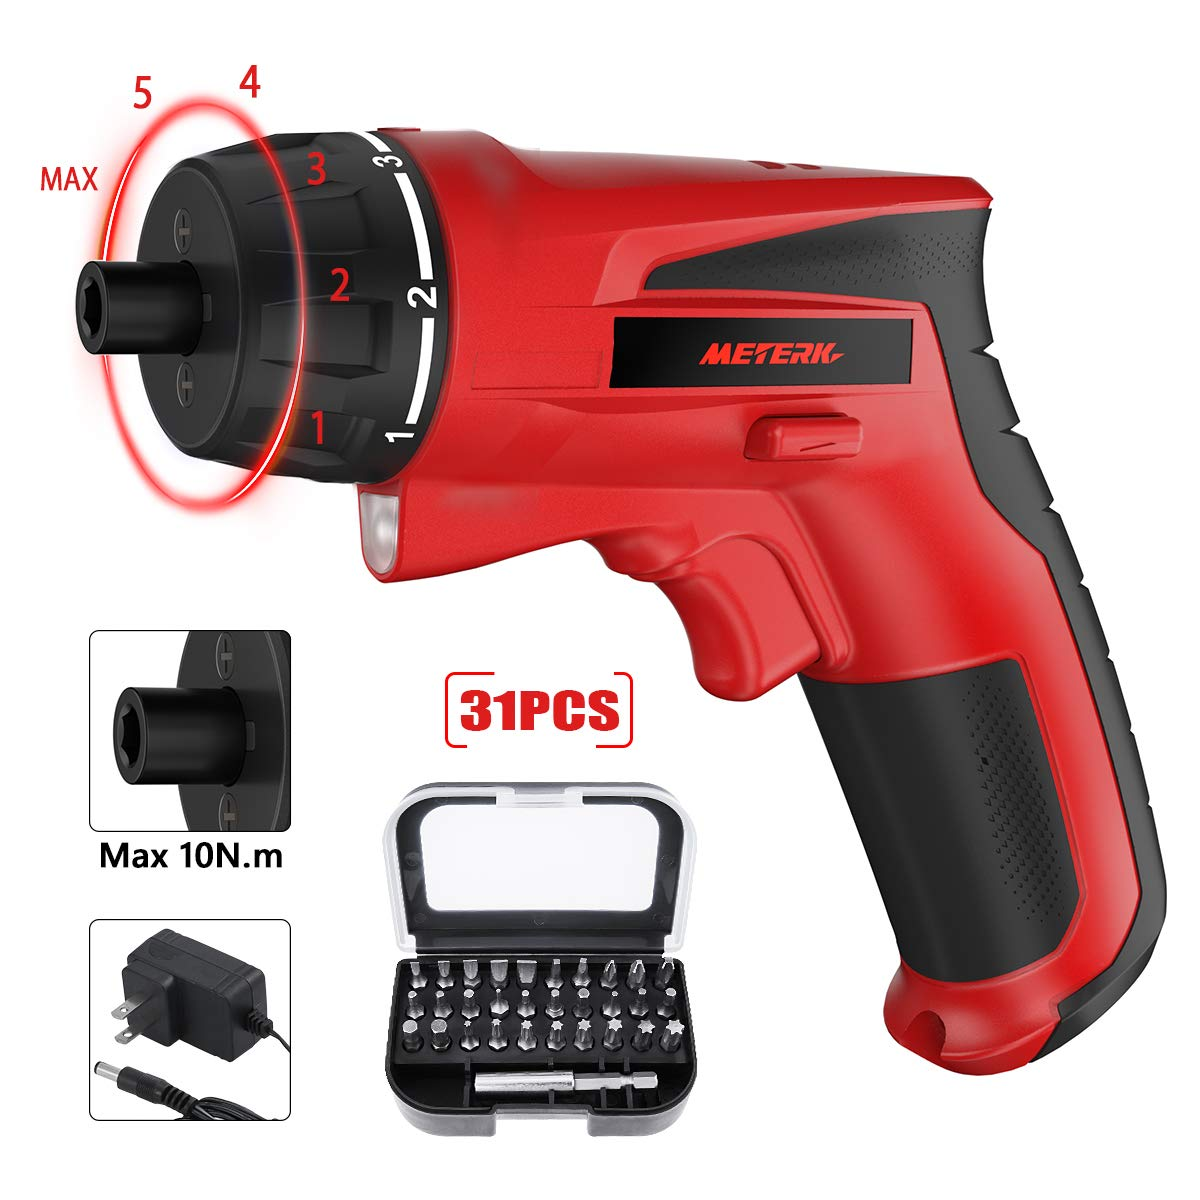 Cordless Electric Screwdriver 10 N.m, 7.2V 1500mAh Rechargeable Cordless Screwdriver with 31Pcs Free Screwdriver Bits, 6-Torque Setting and Front LED Light for Home DIY